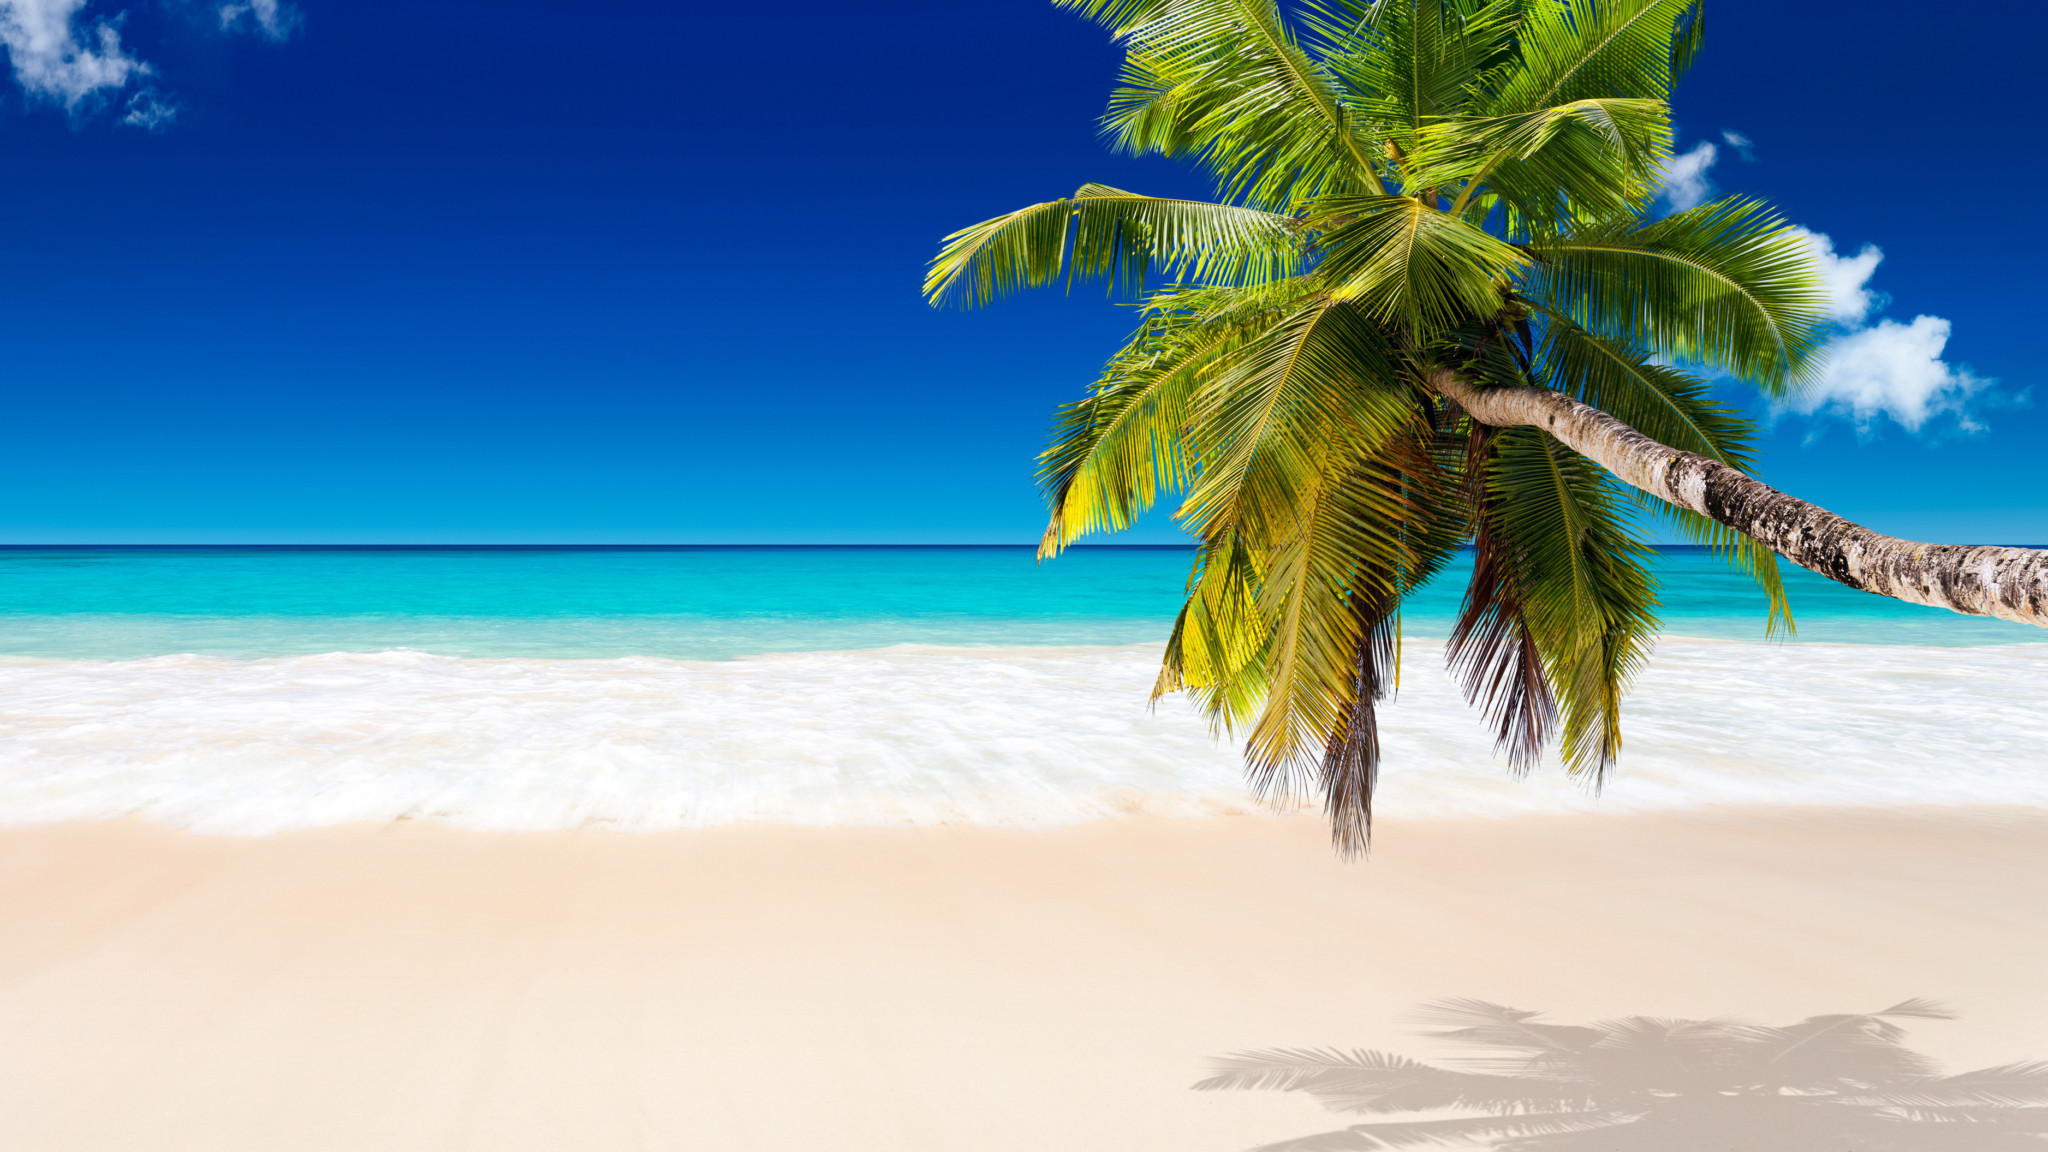 Res: 2048x1152, White-Sand-Beach-Wallpaper-with-Coconut-Tree